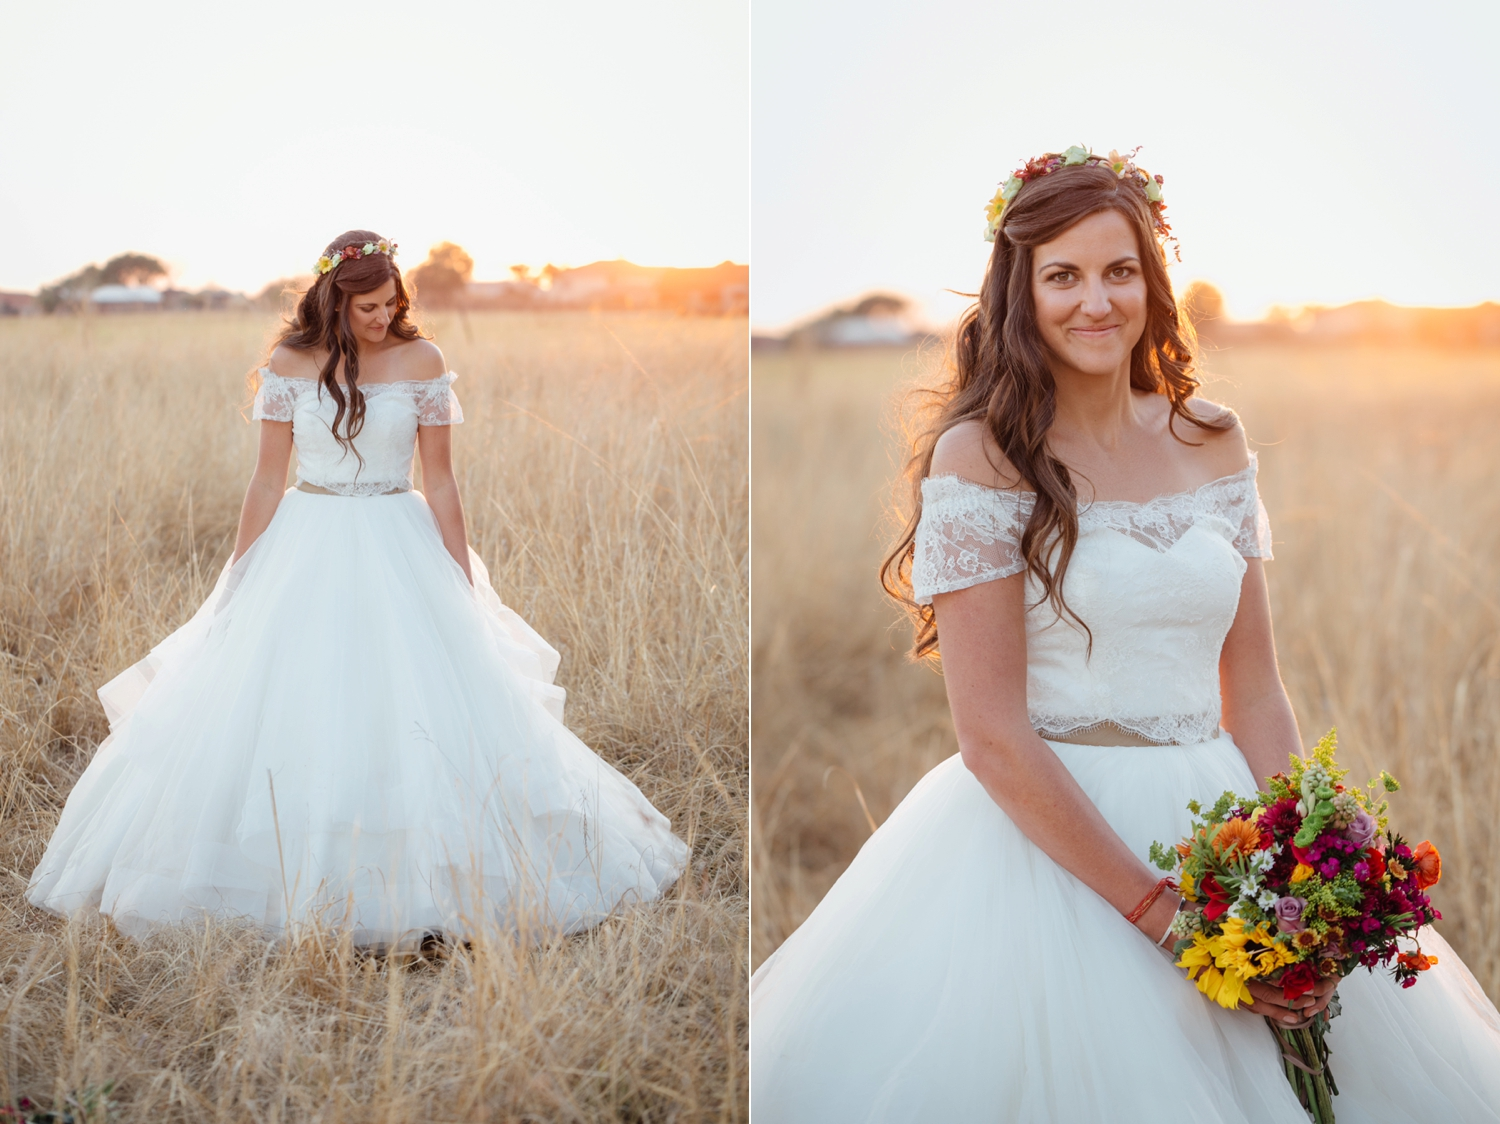 Zimbabwe Wedding Photographer South Africa Cape Town Page And Holmes Photography Jpg 0001